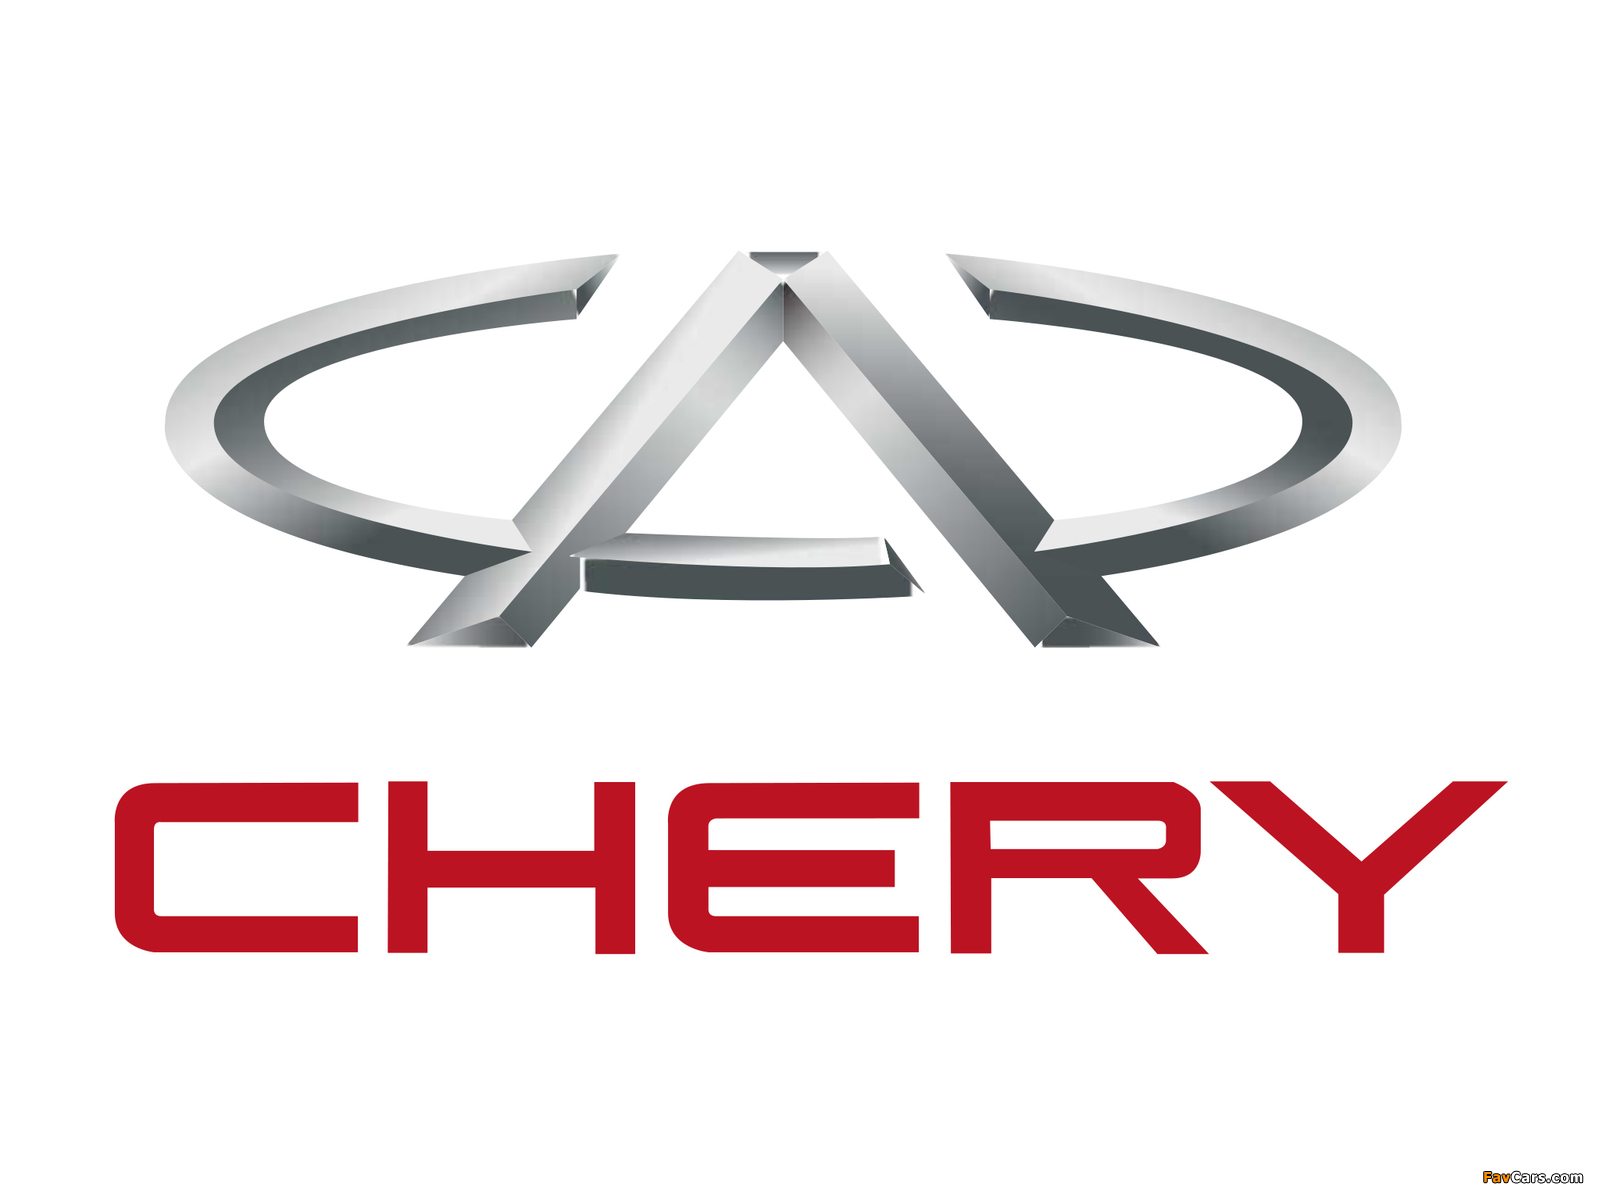 Chery images (1600 x 1200)